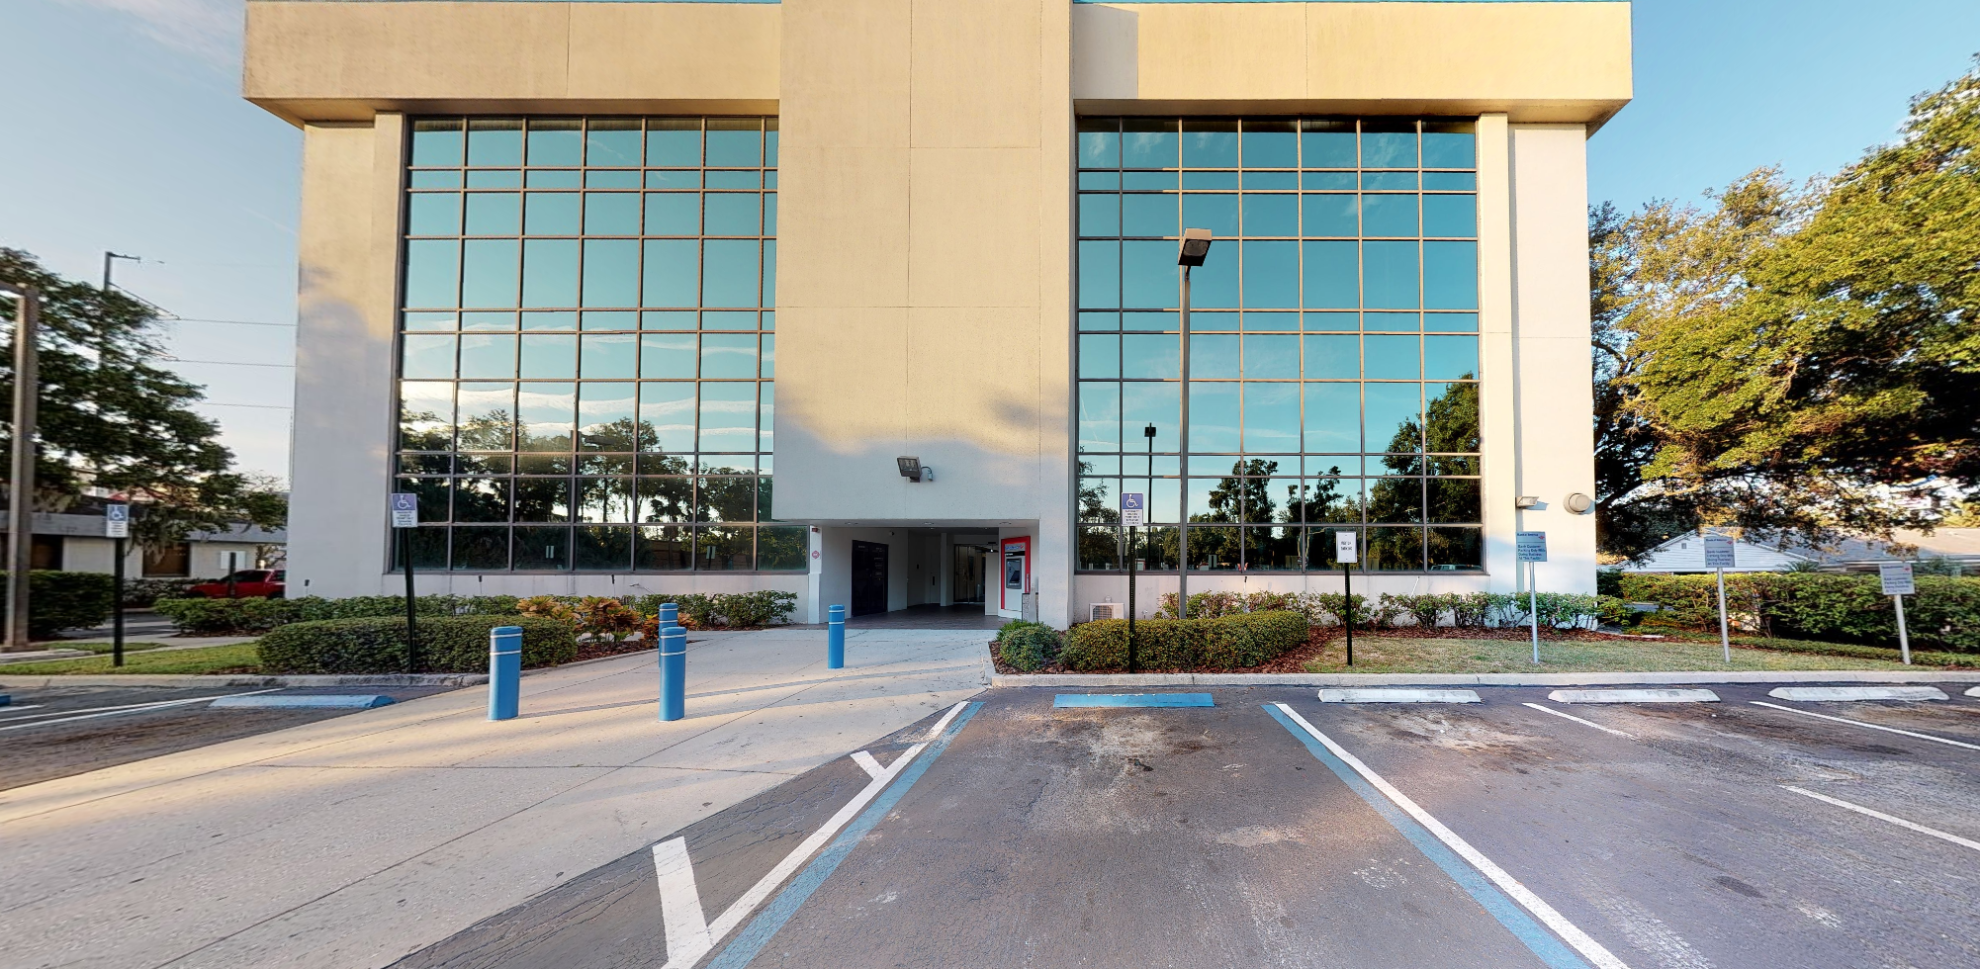 Bank of America financial center with drive-thru ATM   2700 W Dr Martin Luther King Jr Blvd, Tampa, FL 33607